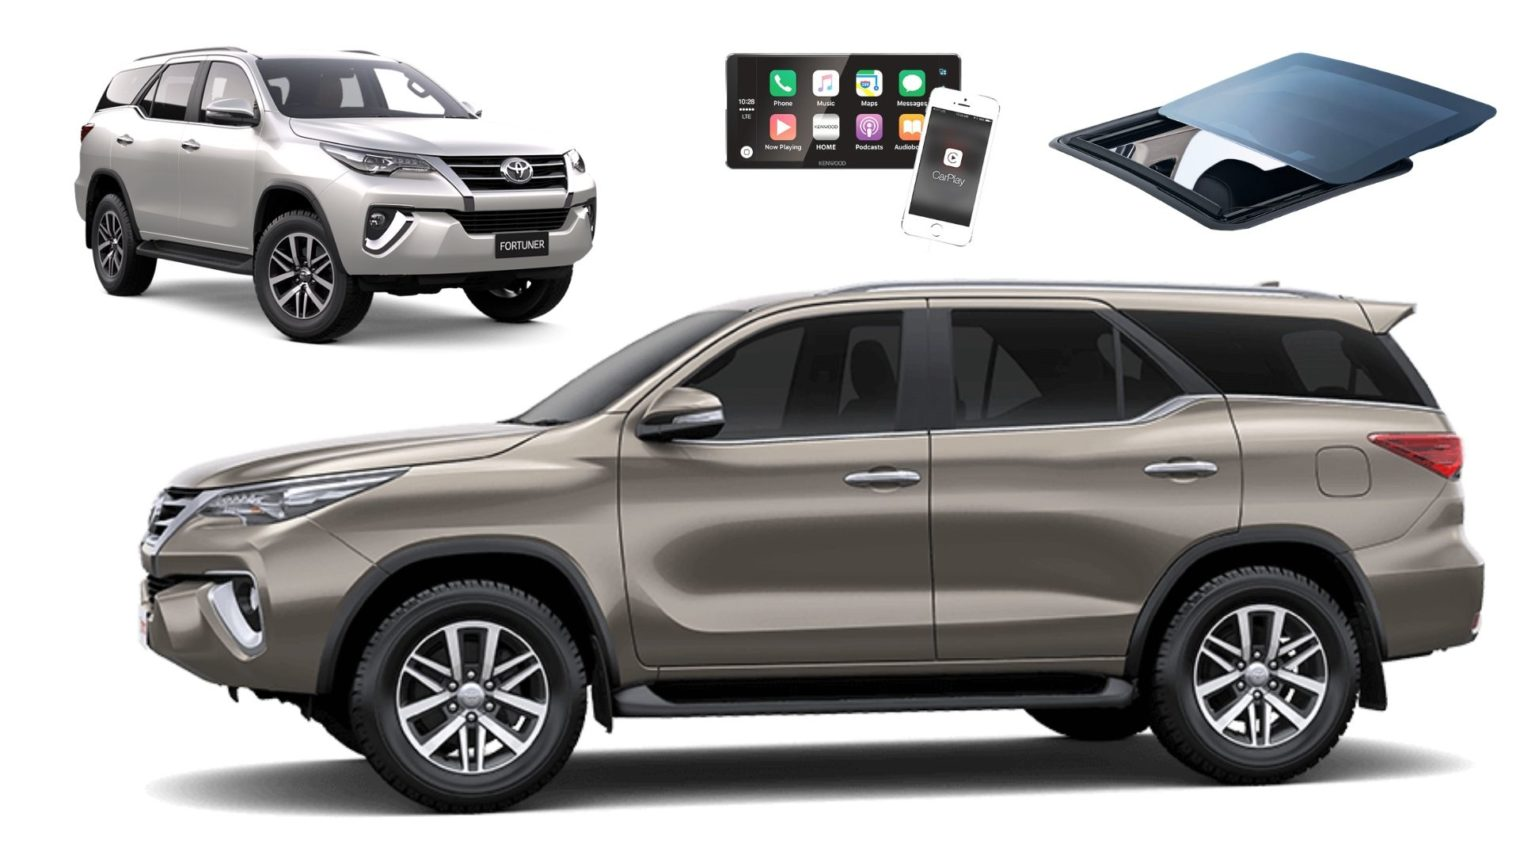 5 New Features Toyota Should Add To The Fortuner Suv